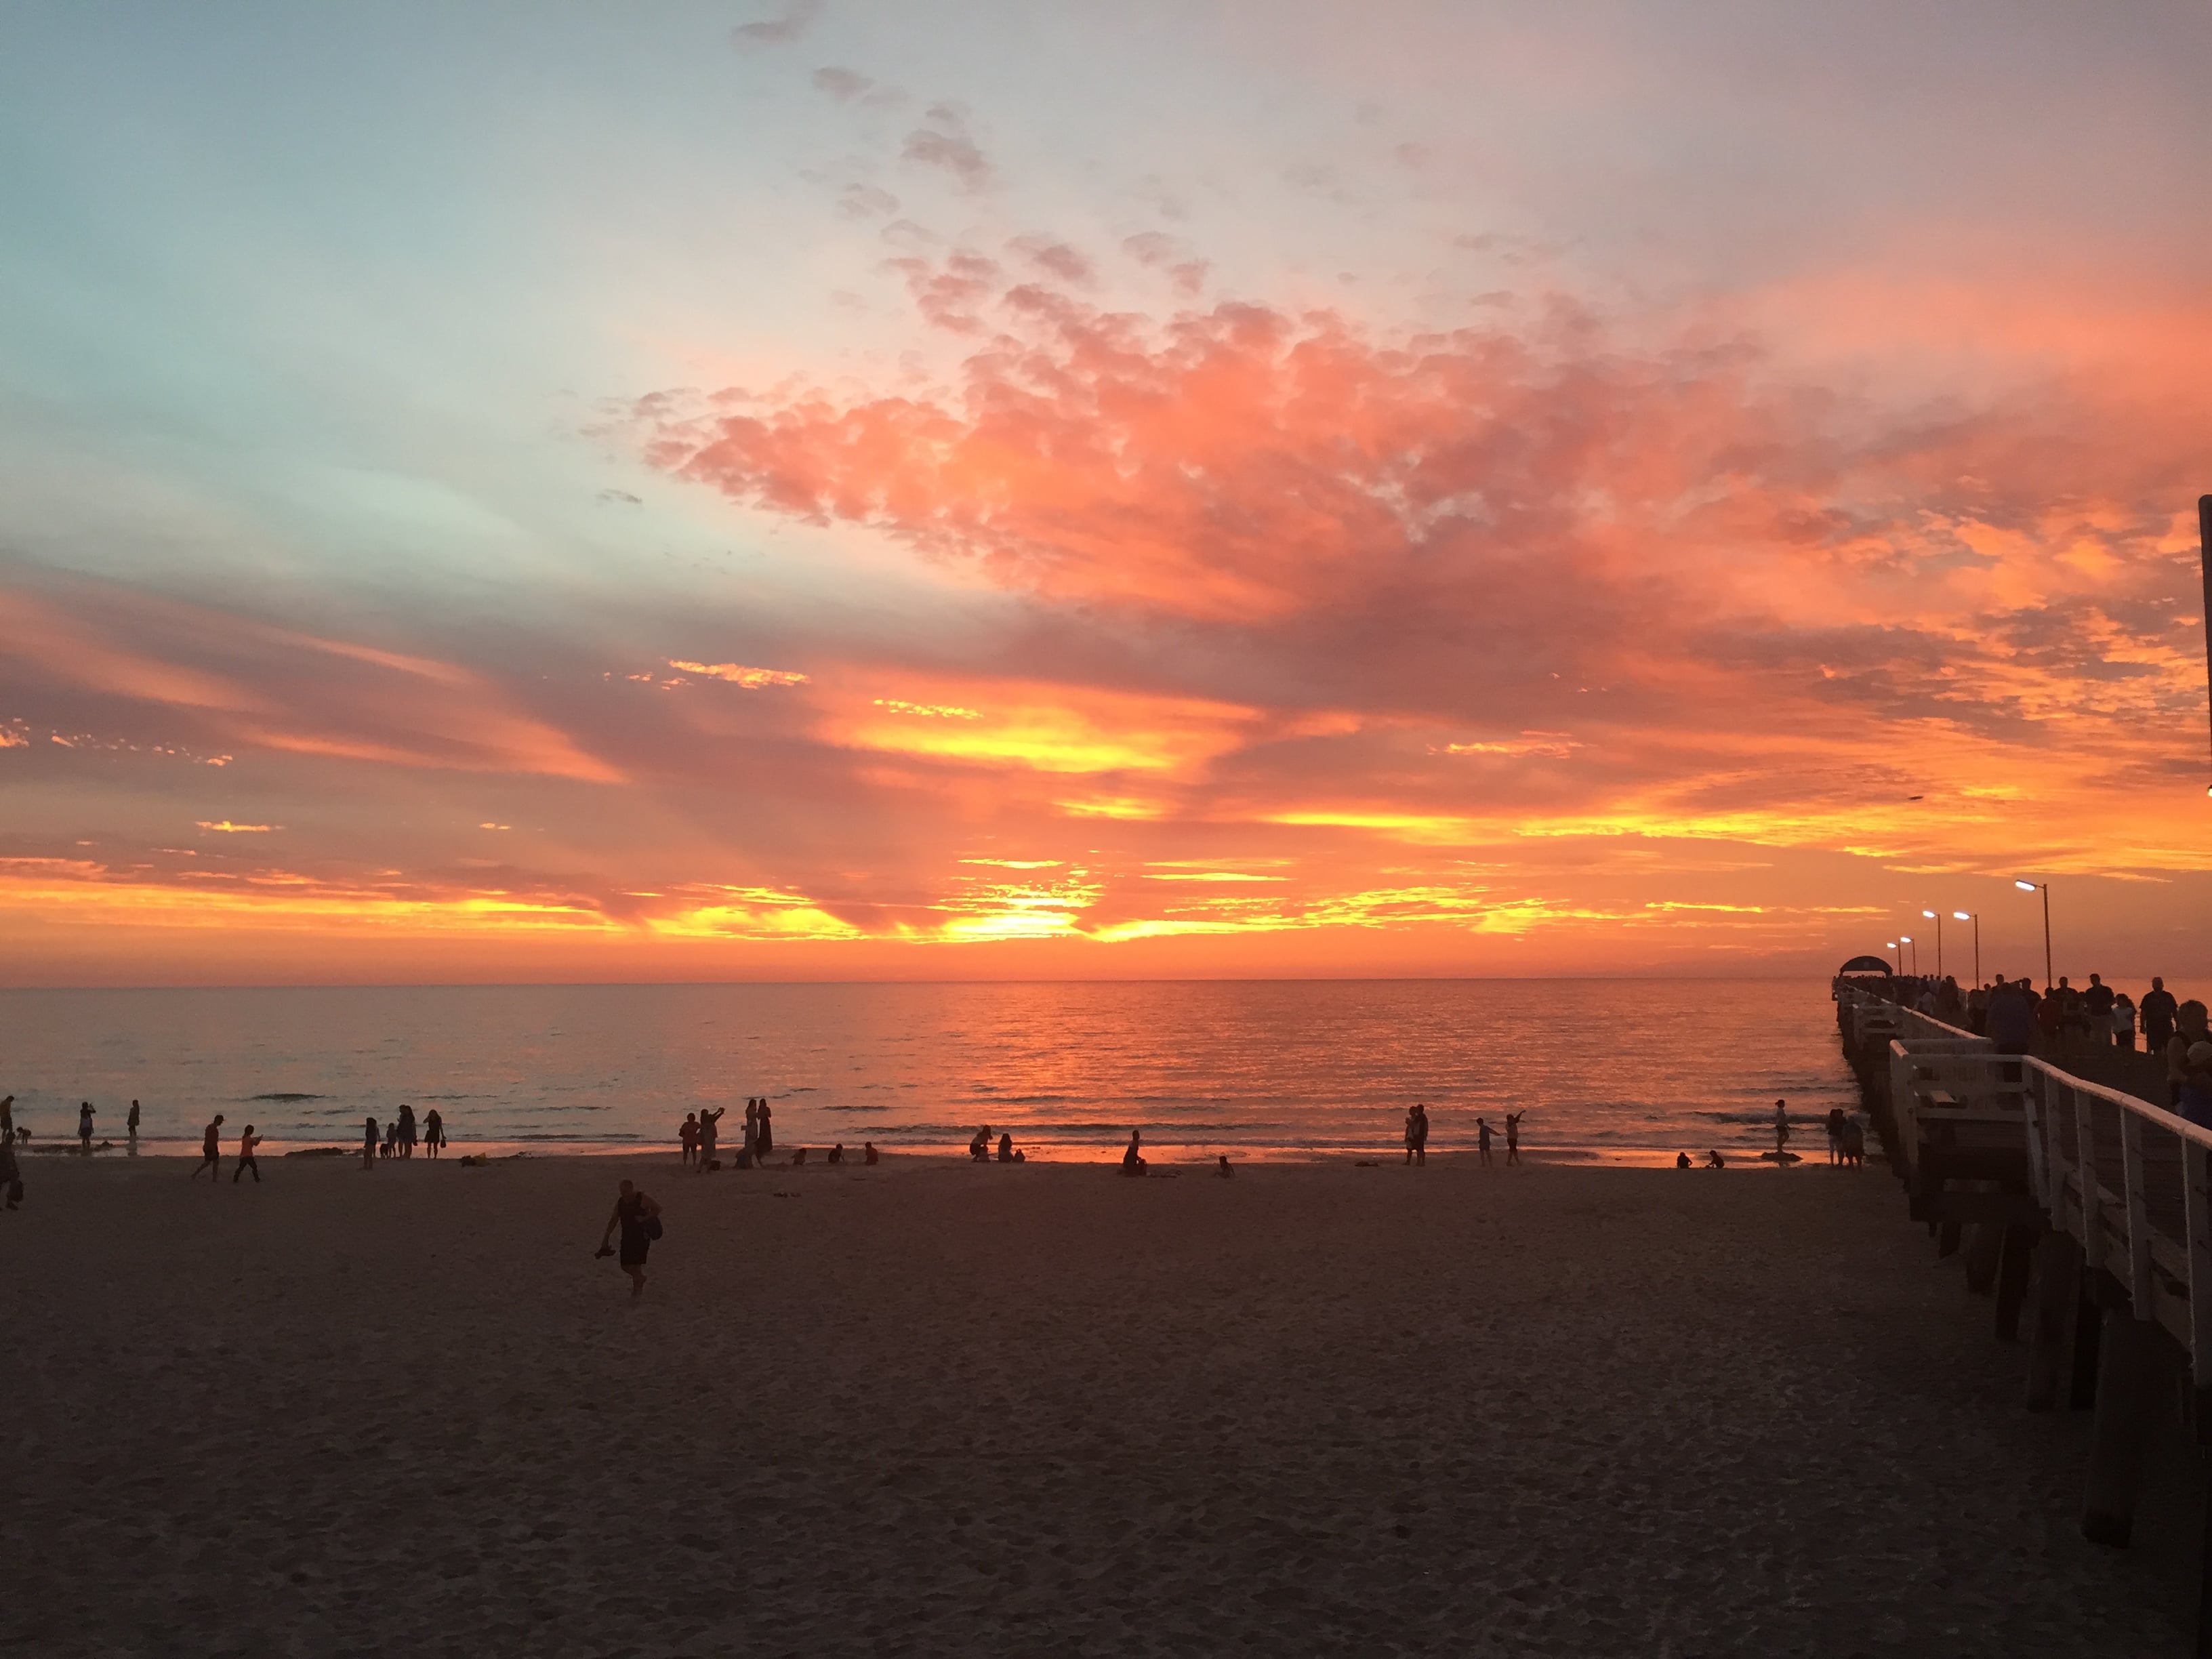 Red sky at night at Adelaide's Henley Beach but delight at Health and Wellbeing Minister's commitments on public health still on hold